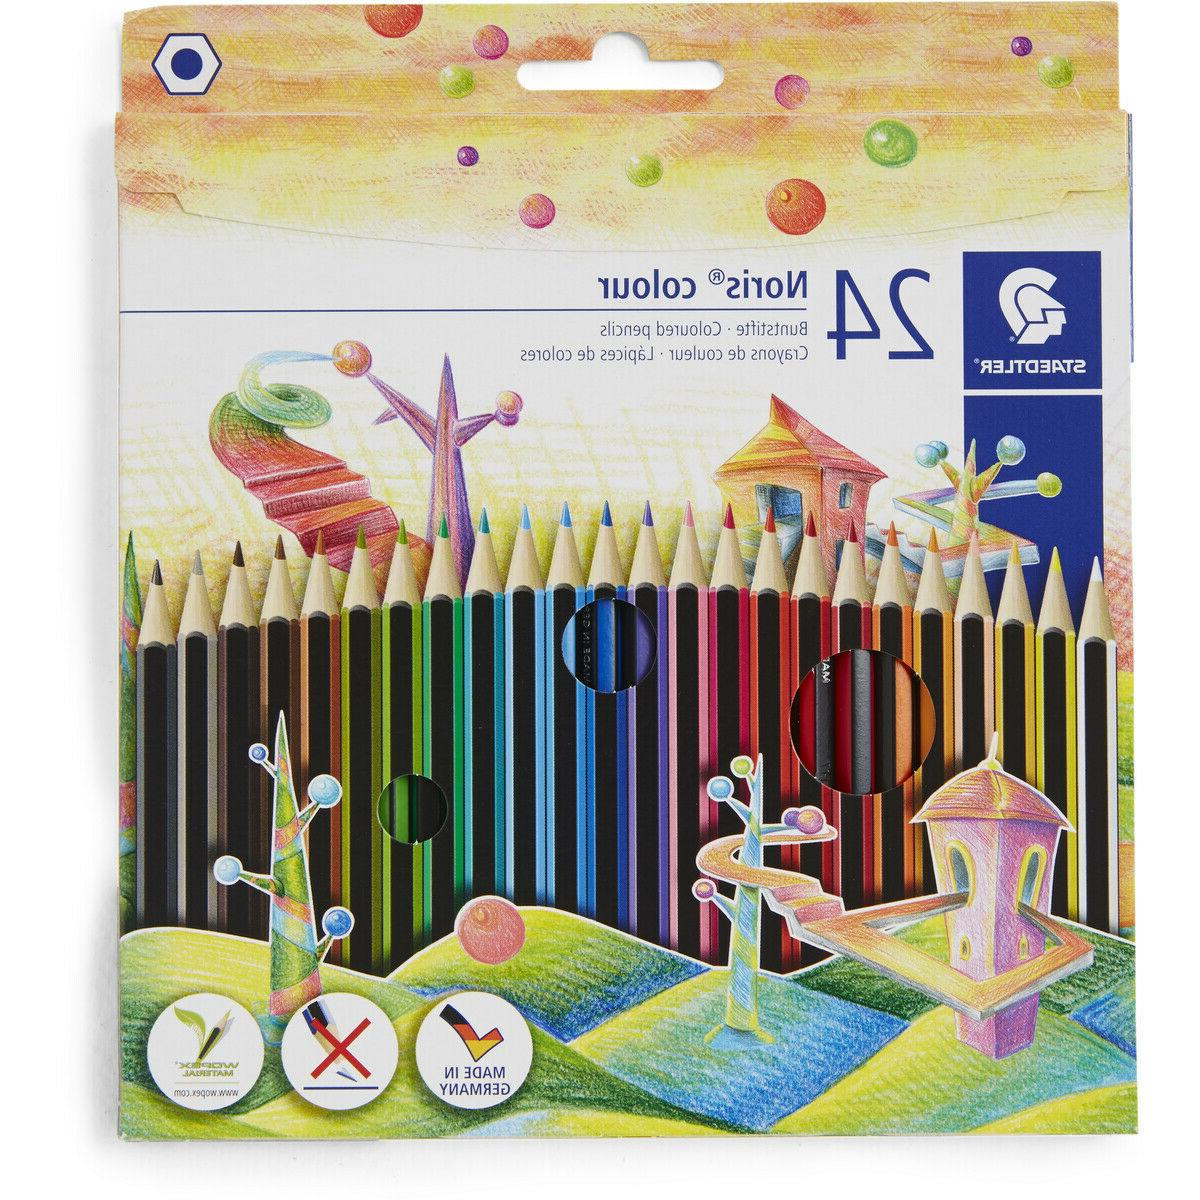 Staedtler Noris Club Made in Germany Coloured Pencils 24 Pac